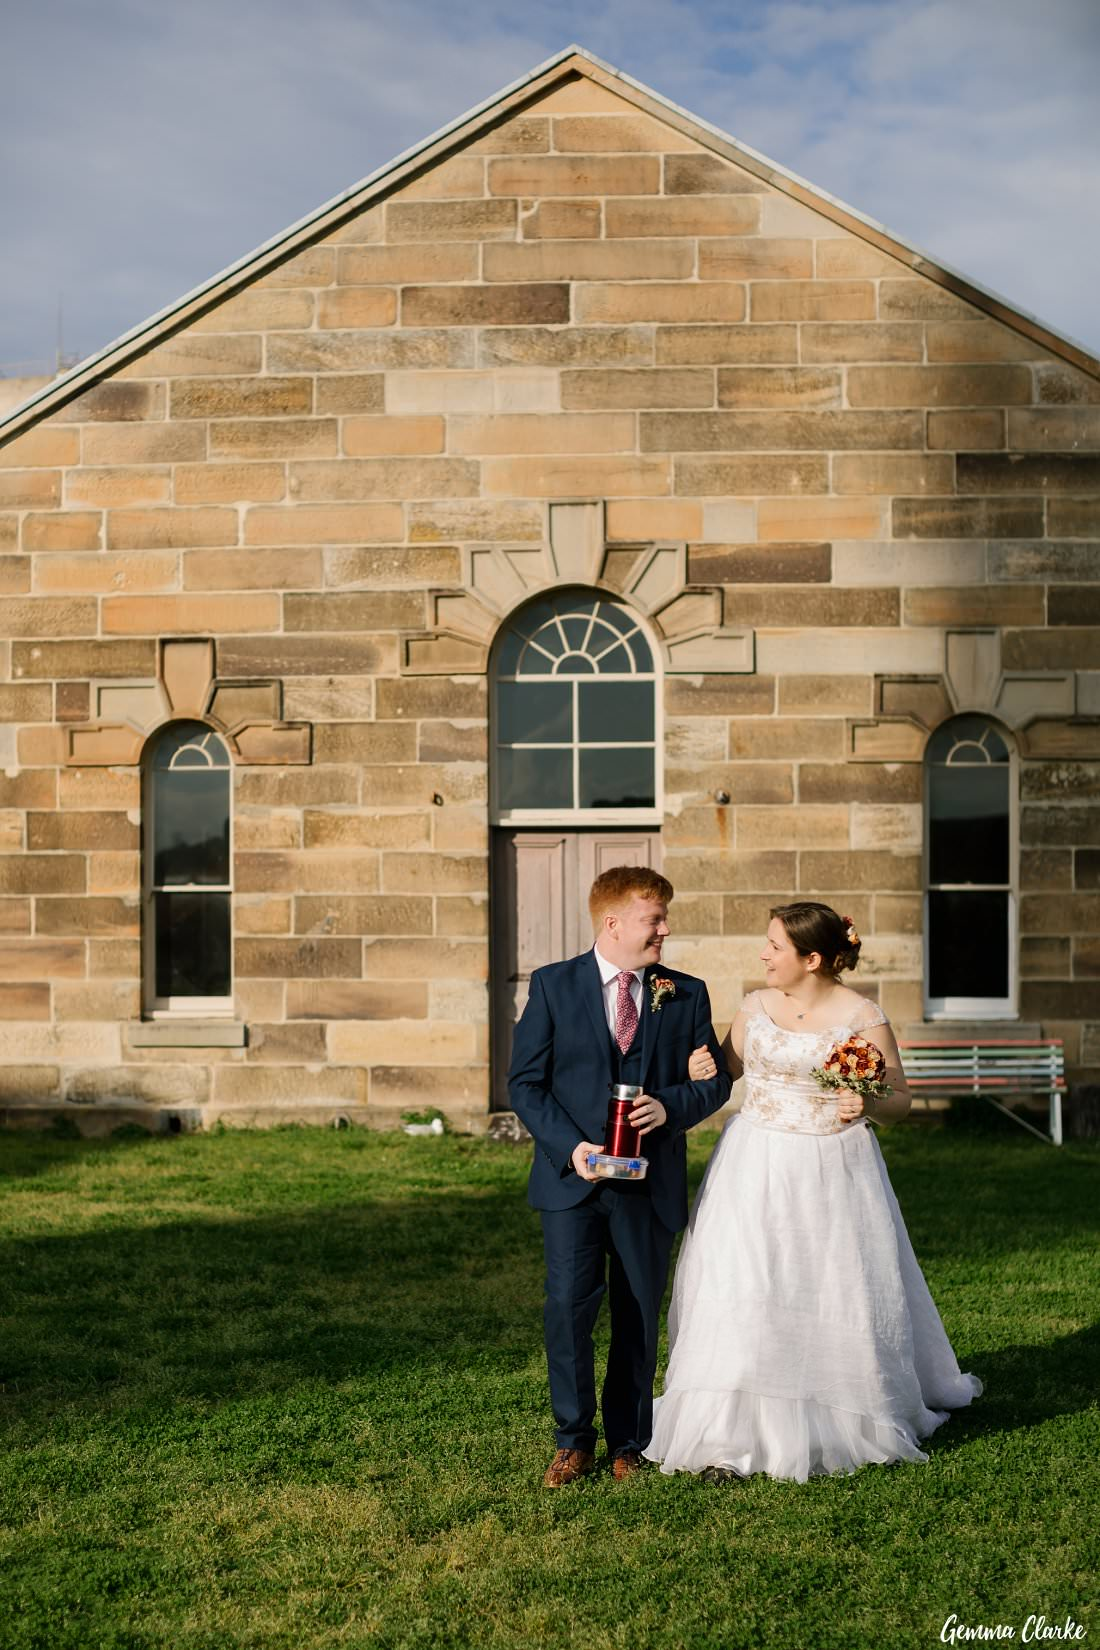 Sandstone backdrop as they walk to their favourite spot for tea and bikkies at their Cockatoo Island Elopement